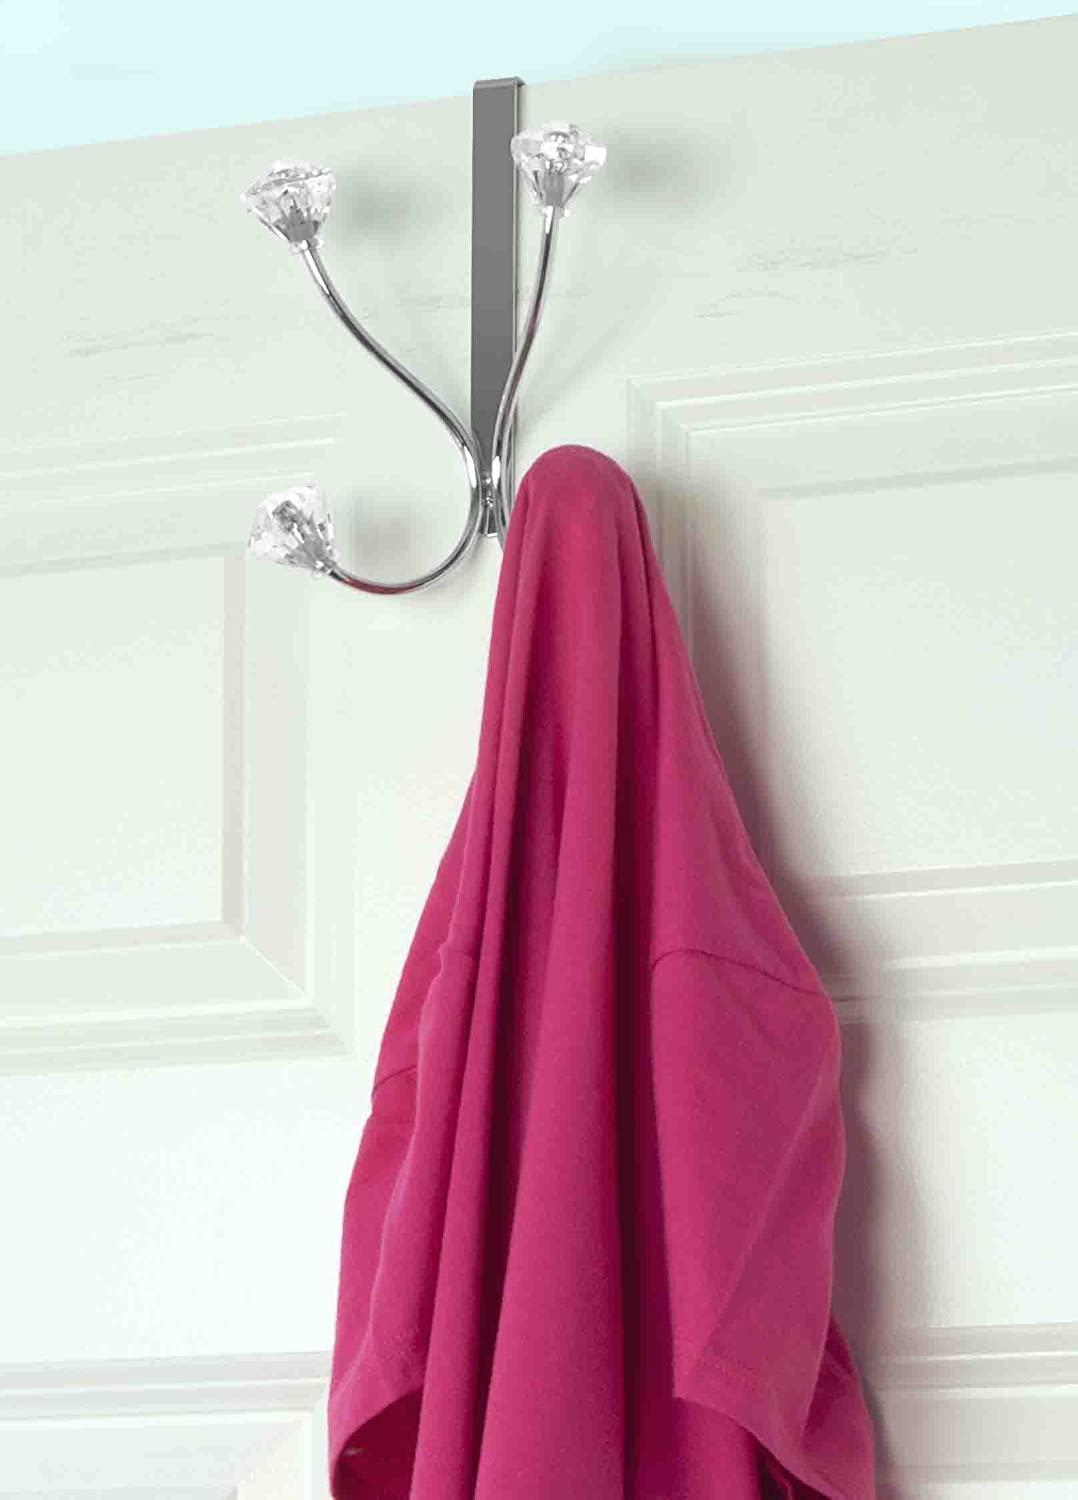 Home Basics Over the Door Double Towel Crystal Hooks, For Hanging Clothes, Coats, Robes or Towels, Organize Bathroom, Bedroom and Closet,Chrome